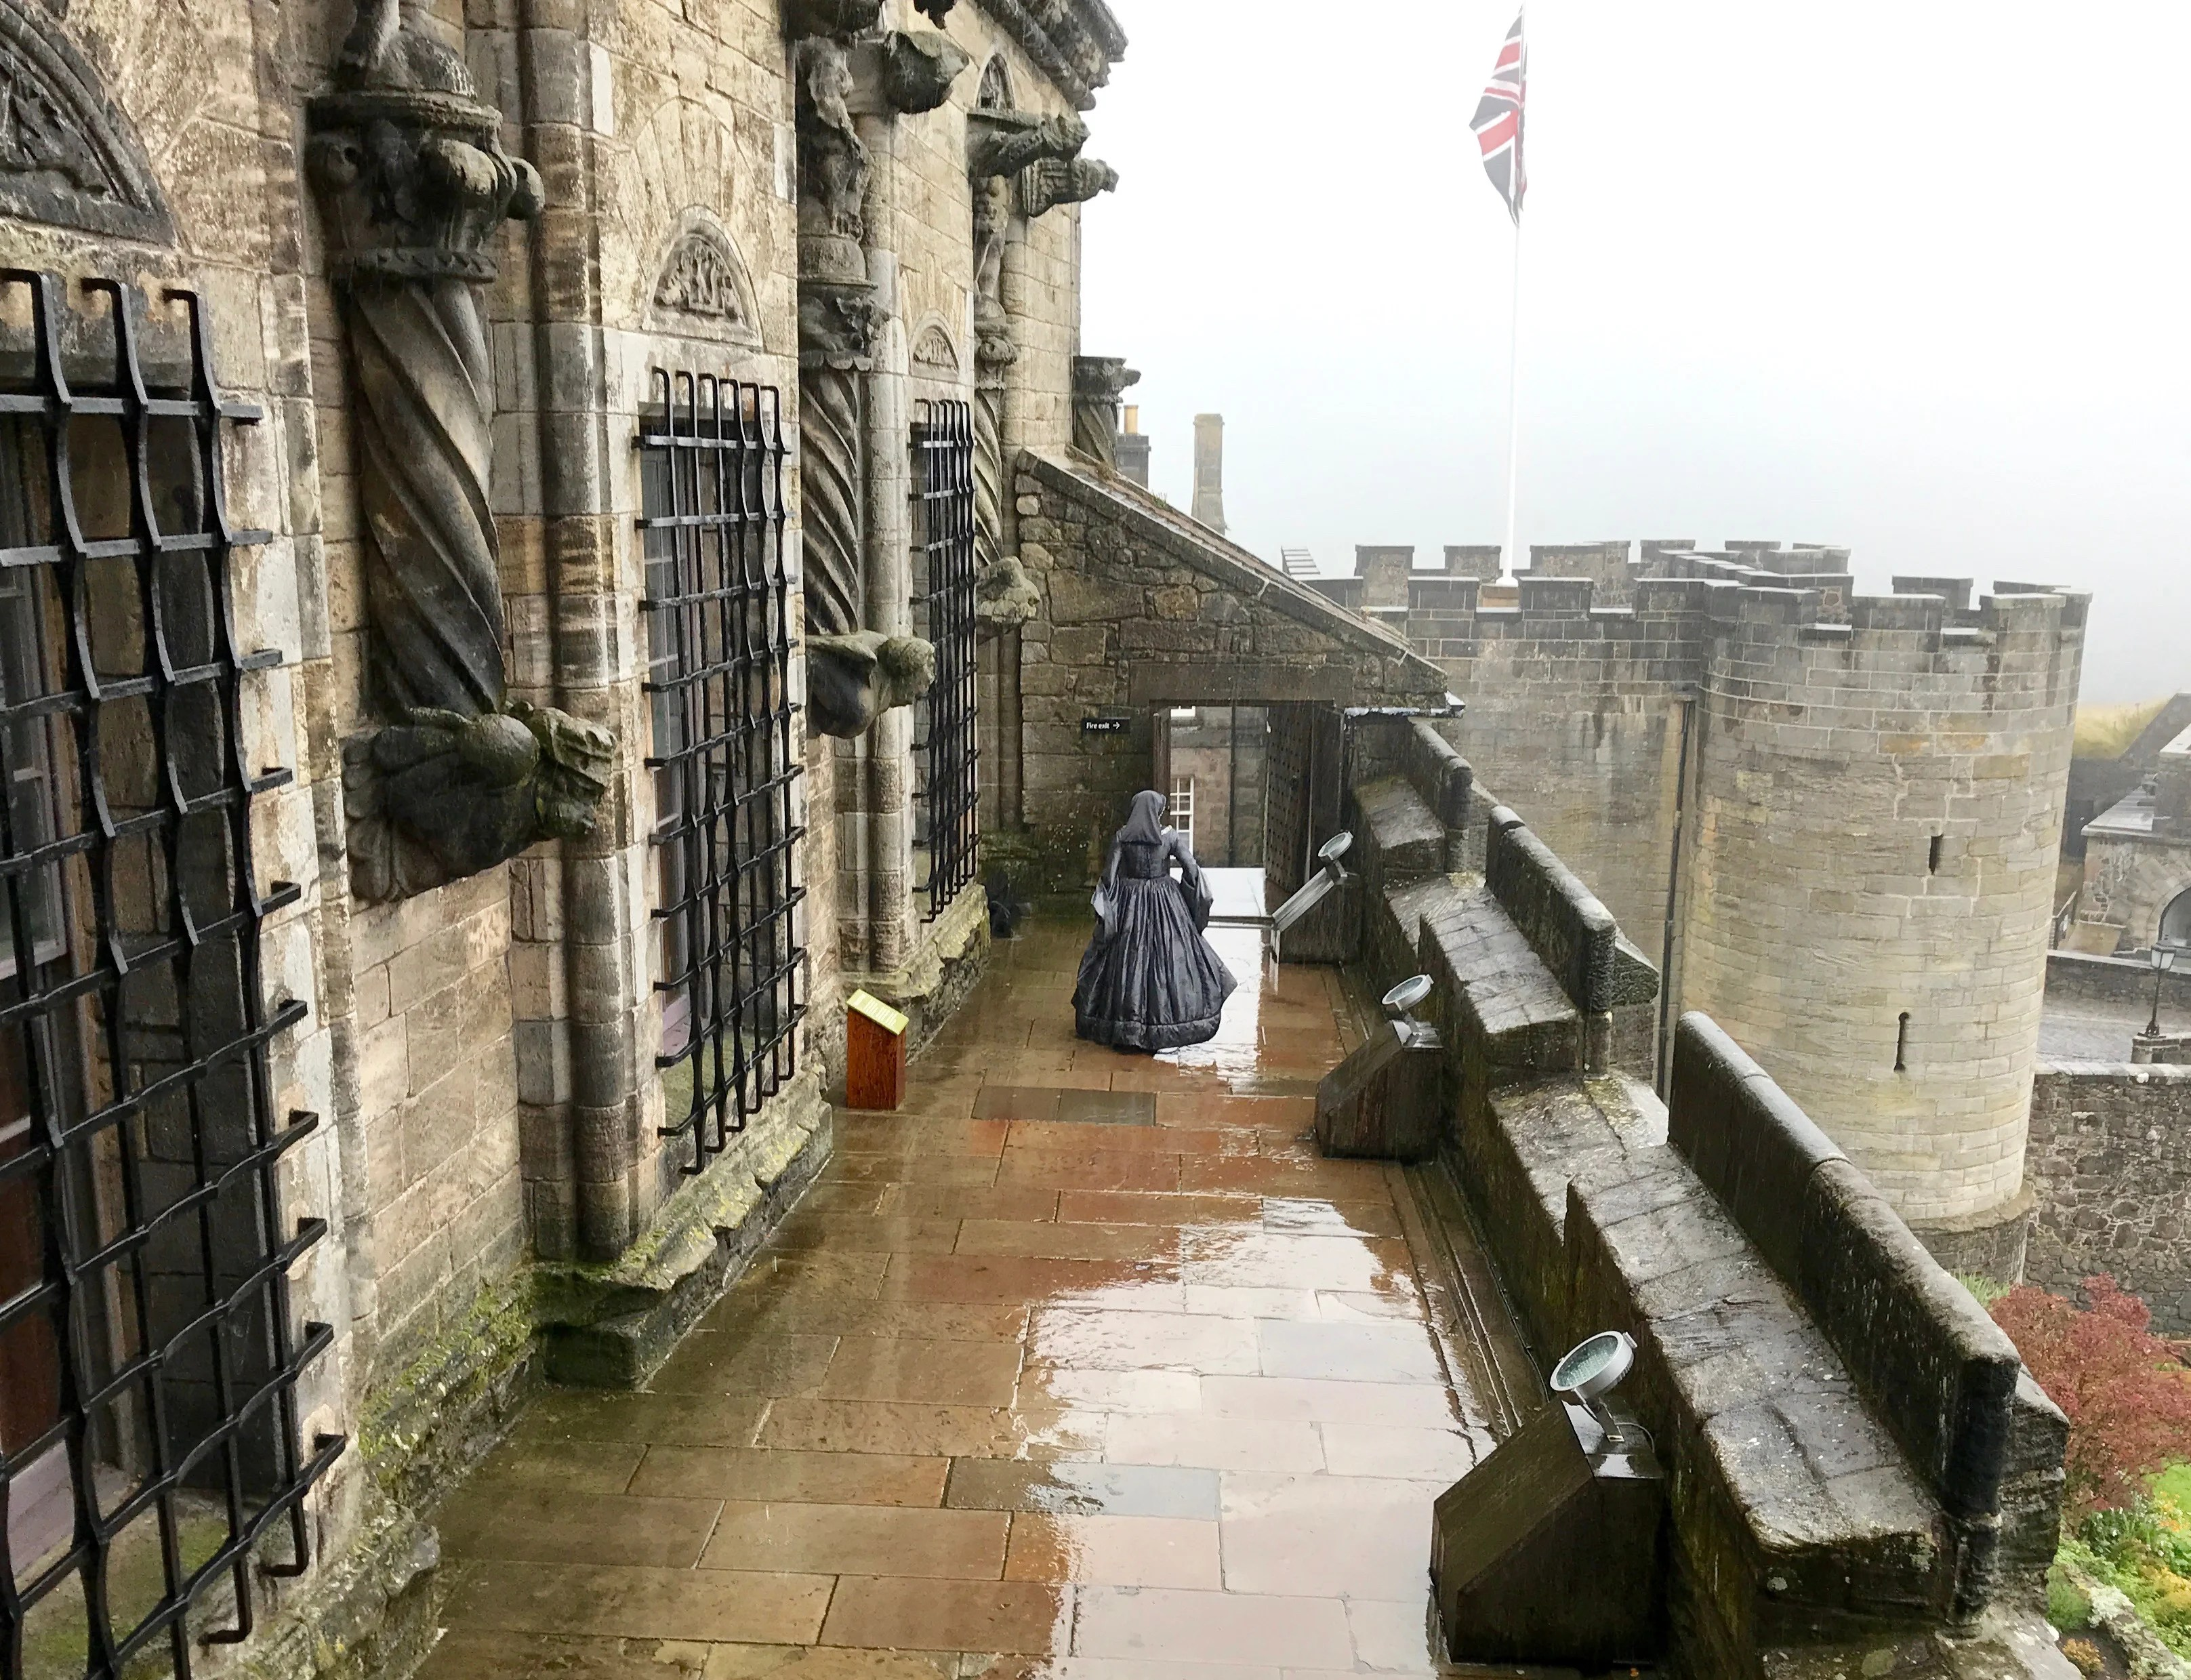 Dressed in period costume, this lady of Stirling Castle walks the ramparts in the rain.